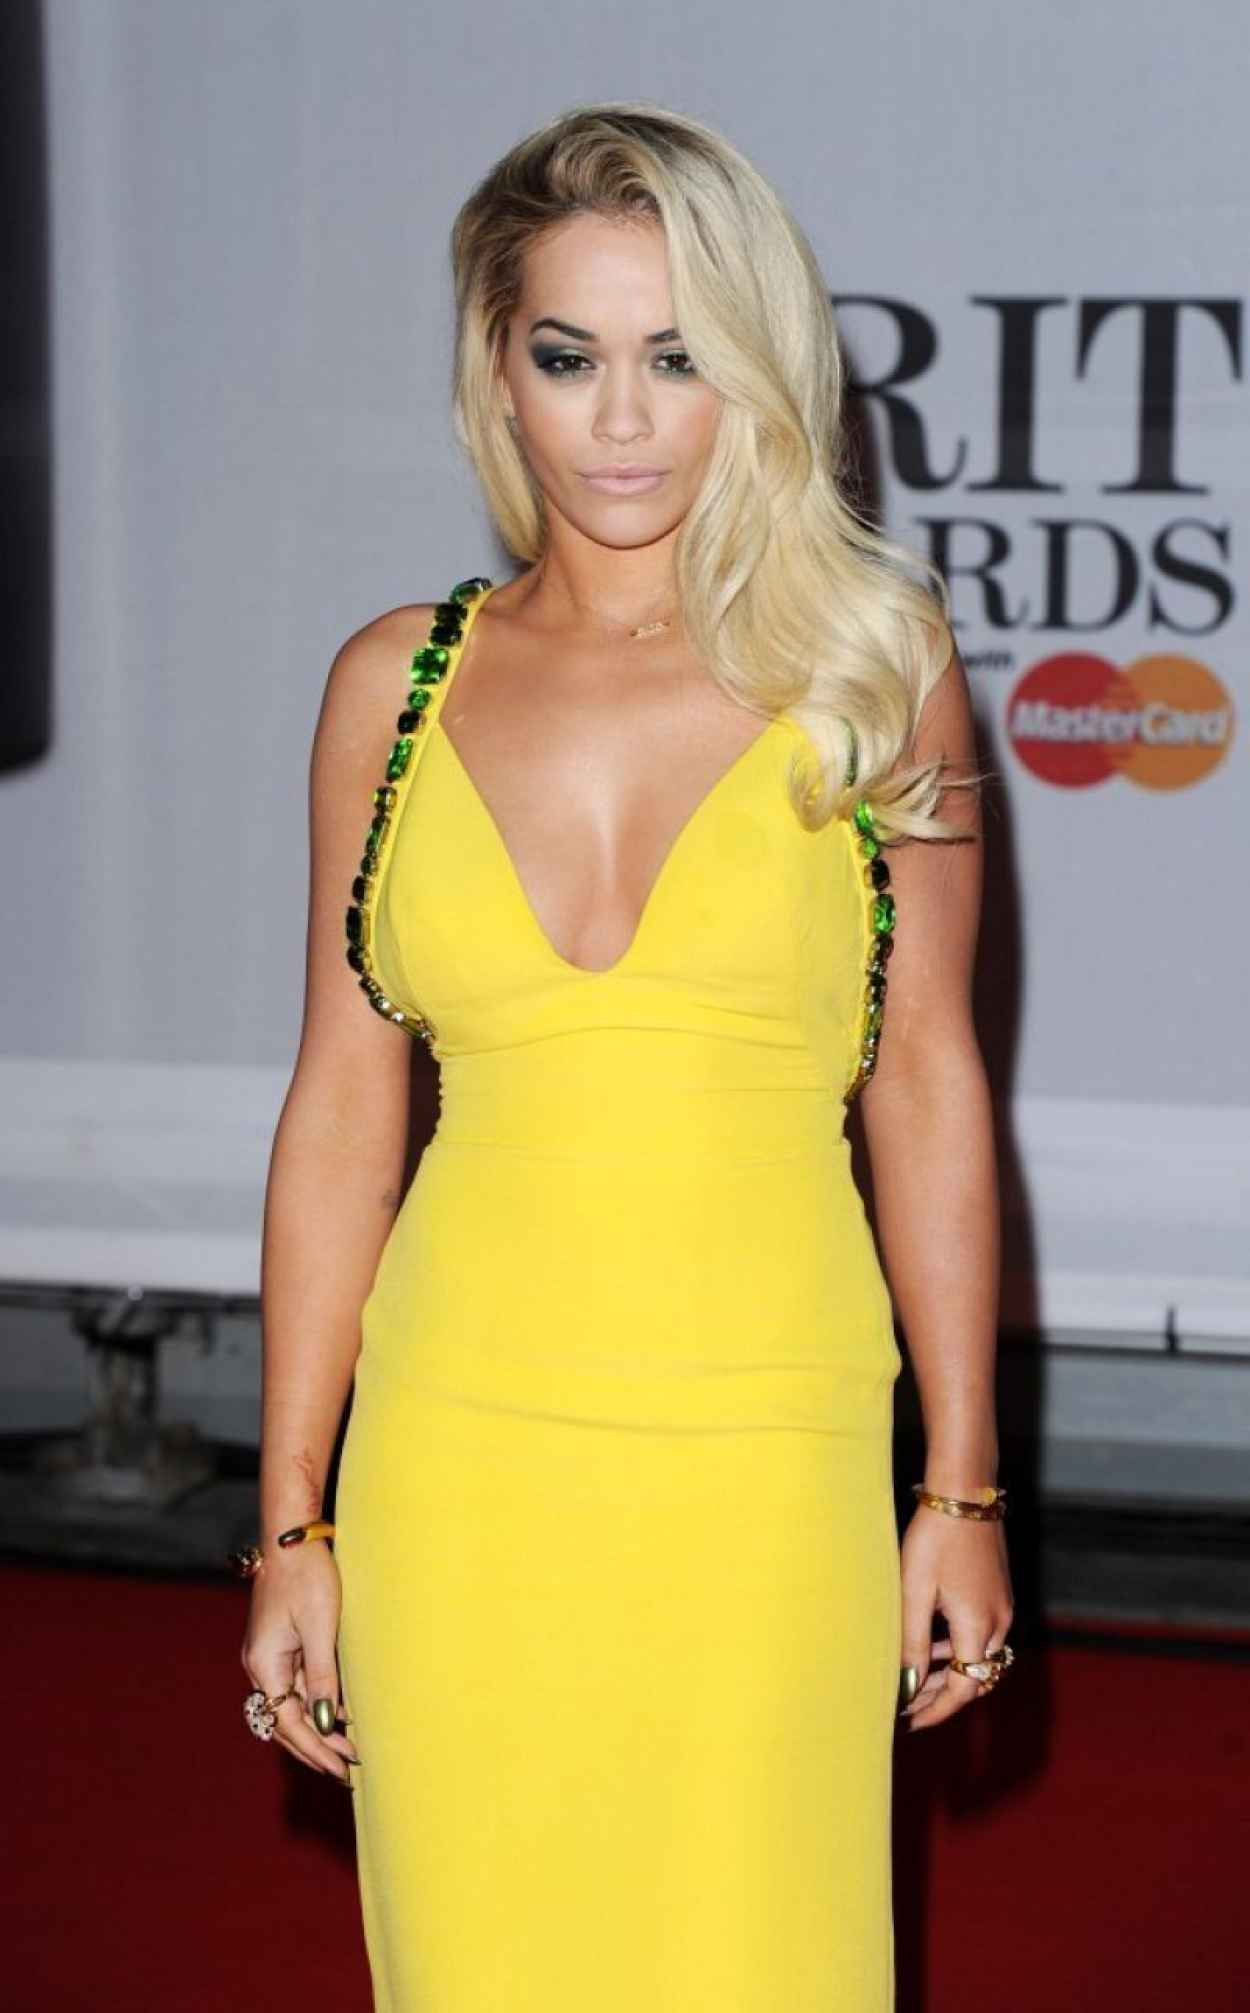 Rita Ora Wearing Prada Dress - 2015 BRIT Awards-1